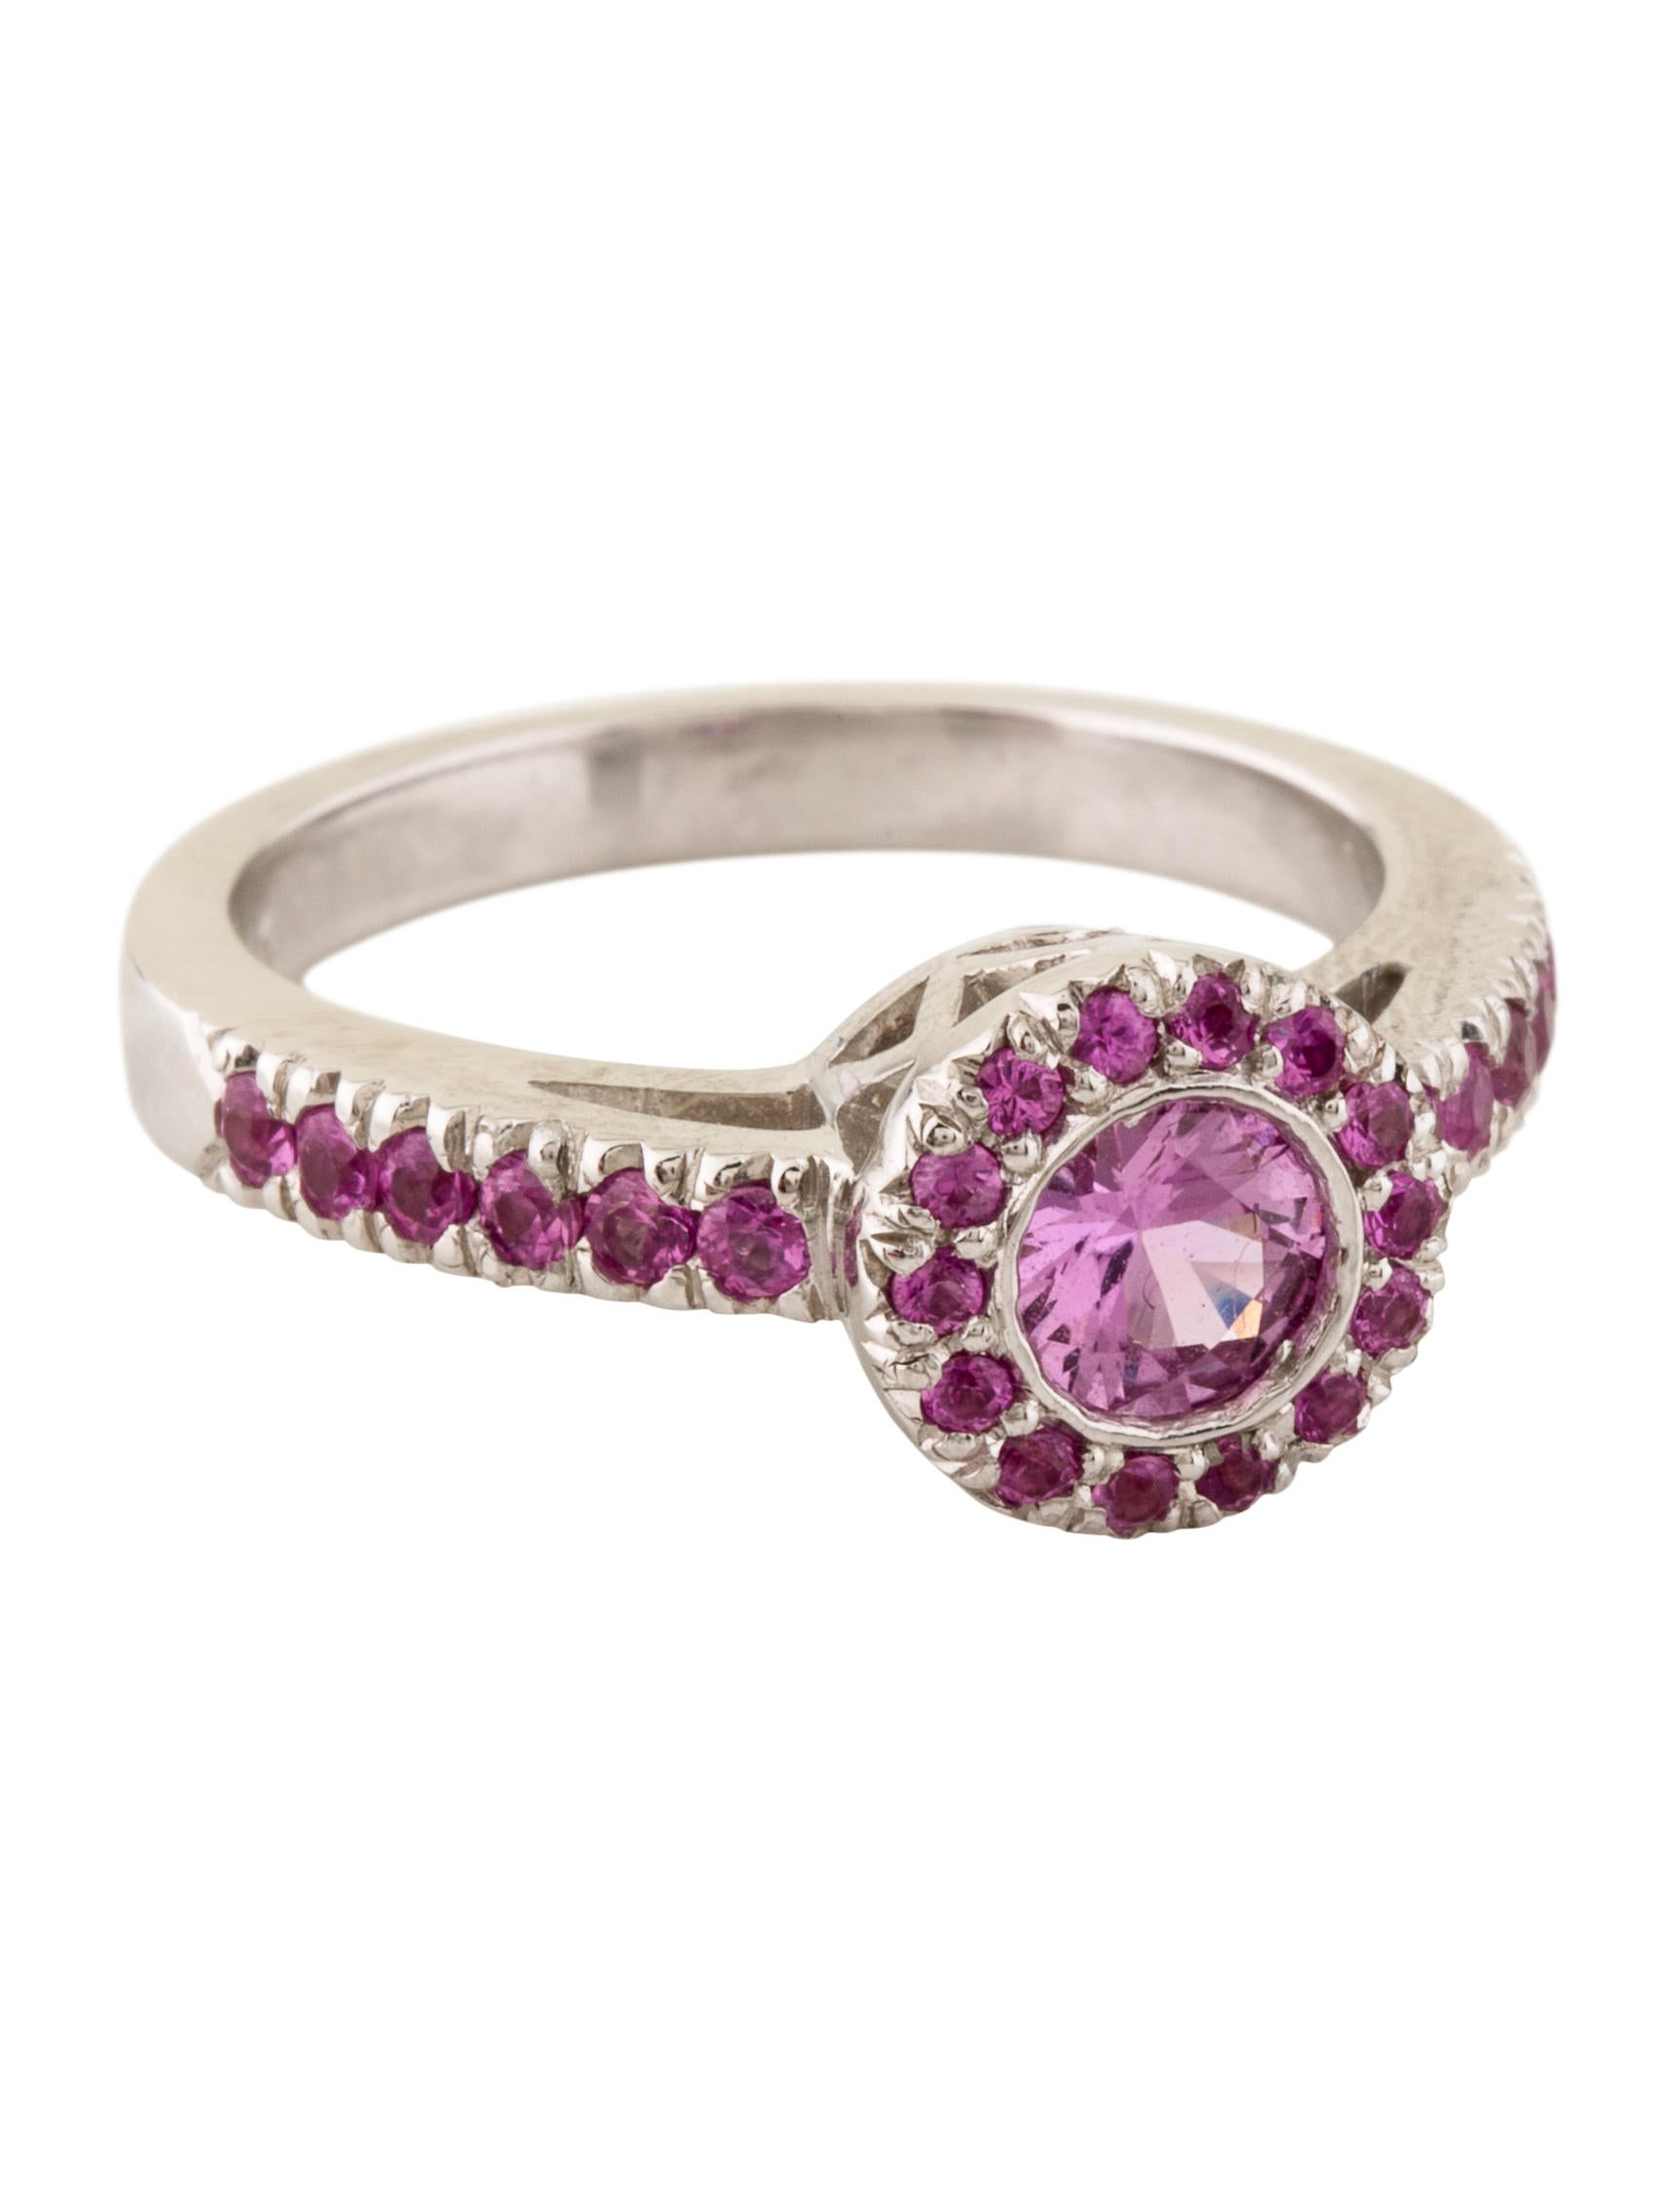 18K Pink Sapphire Ring - Rings - RRING23822 | The RealReal